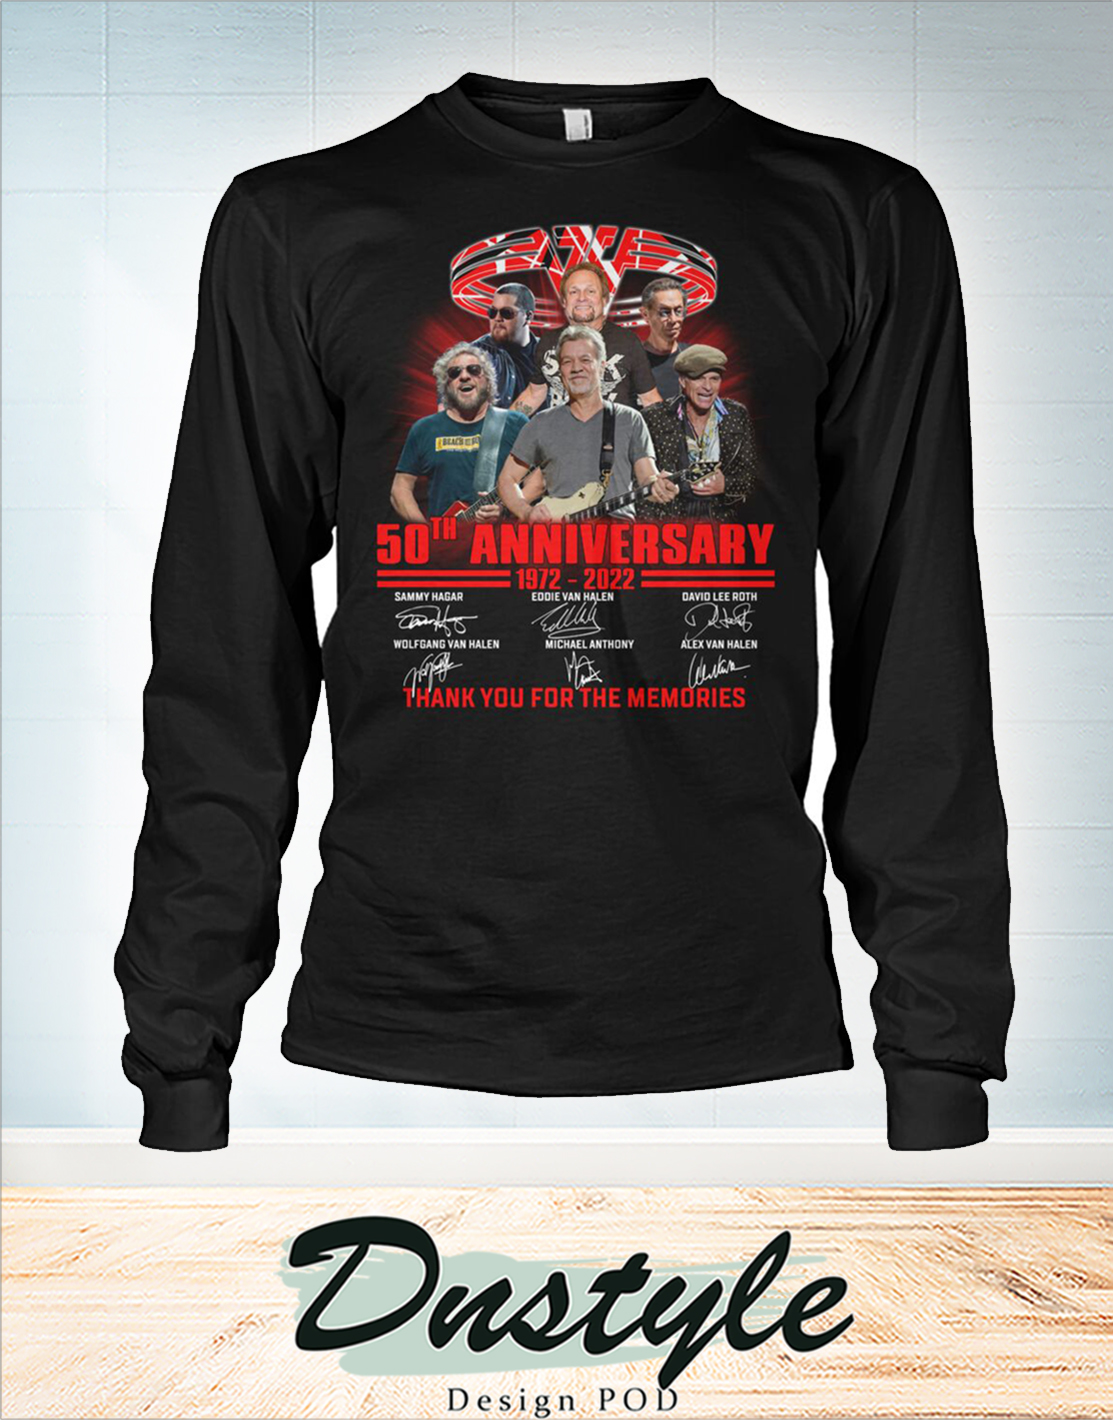 Van Halen 50th 1972 2022 anniversary thanks you for the memories long sleeve